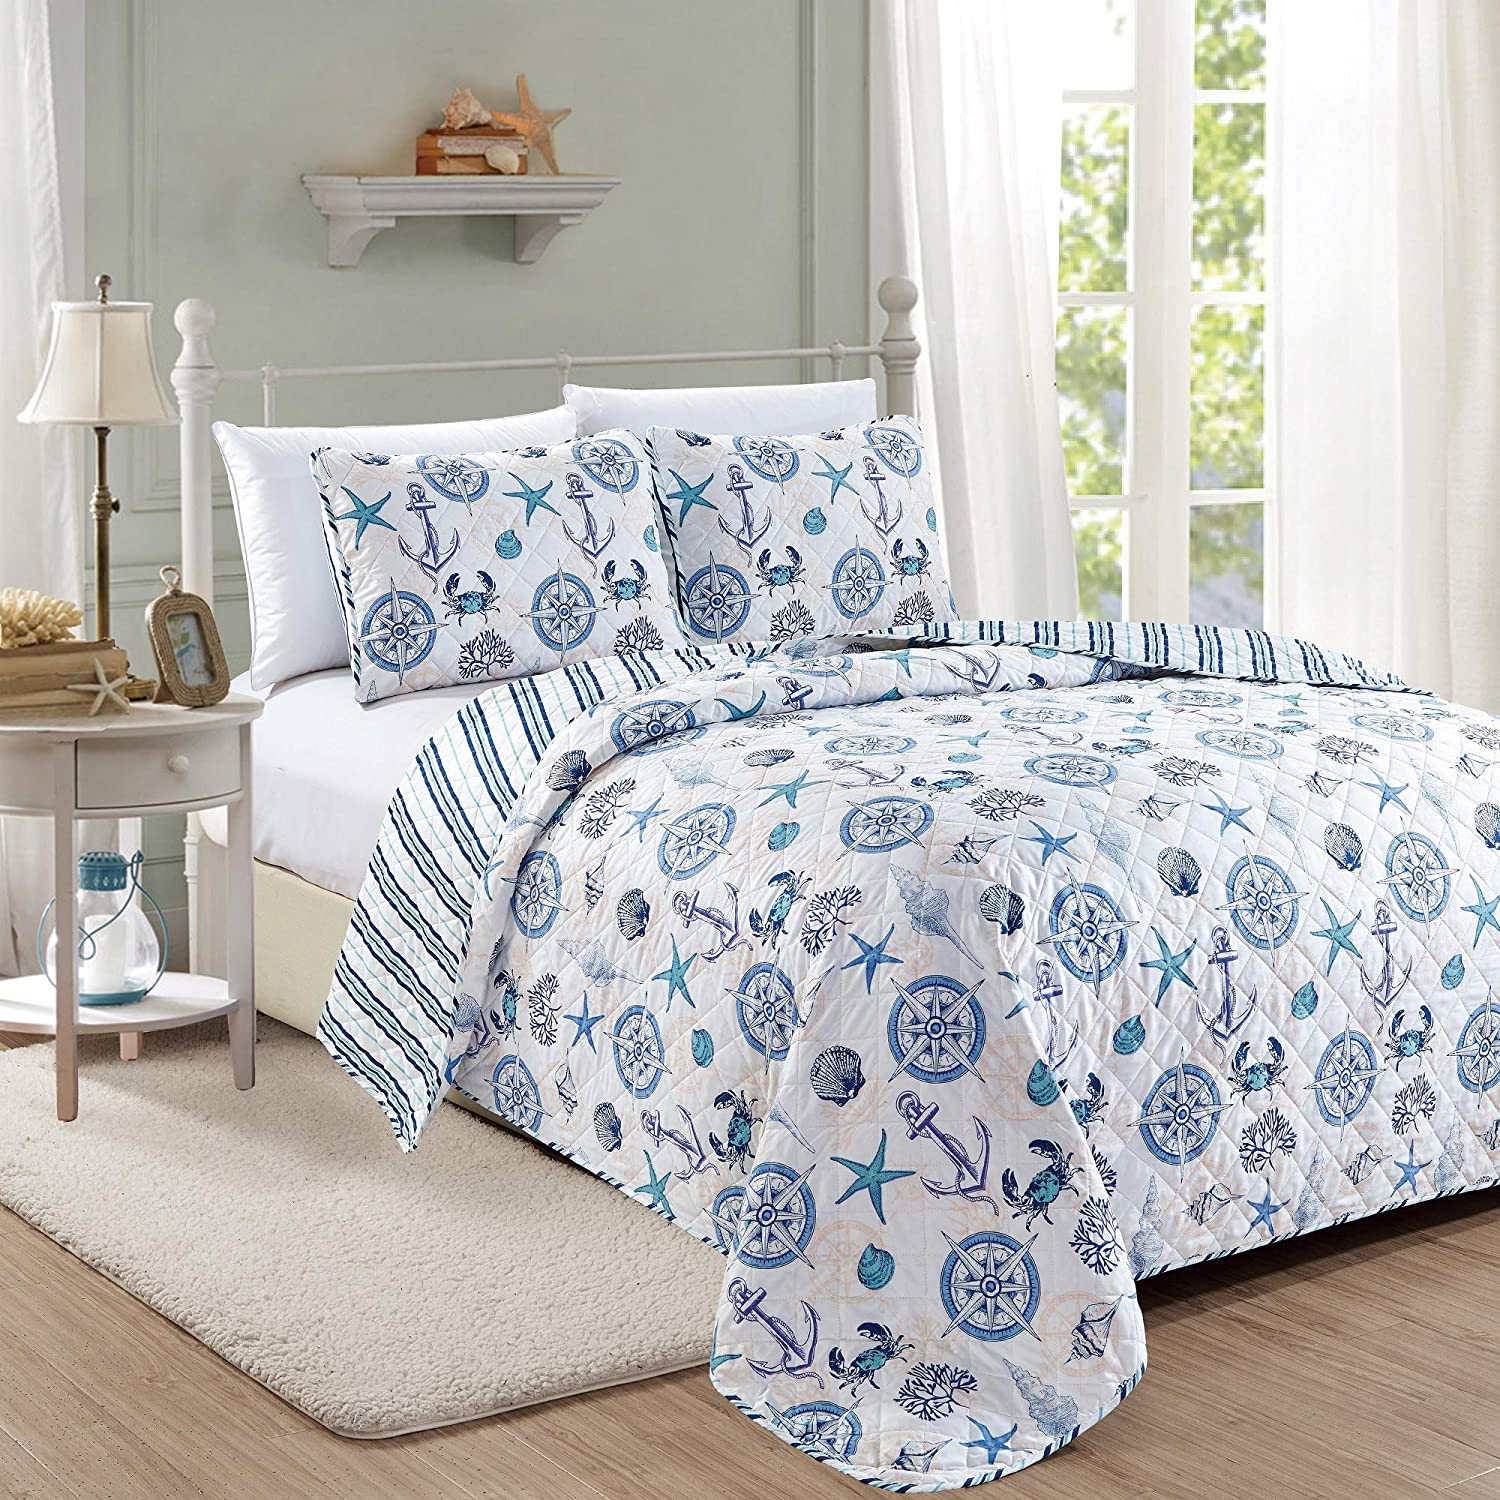 Great Bay Home Azure Coastal Collection 3 Piece Quilt Set with Shams. Reversible Beach Theme Bedspread Coverlet. Machine Washable. (Full/Queen): Home & Kitchen